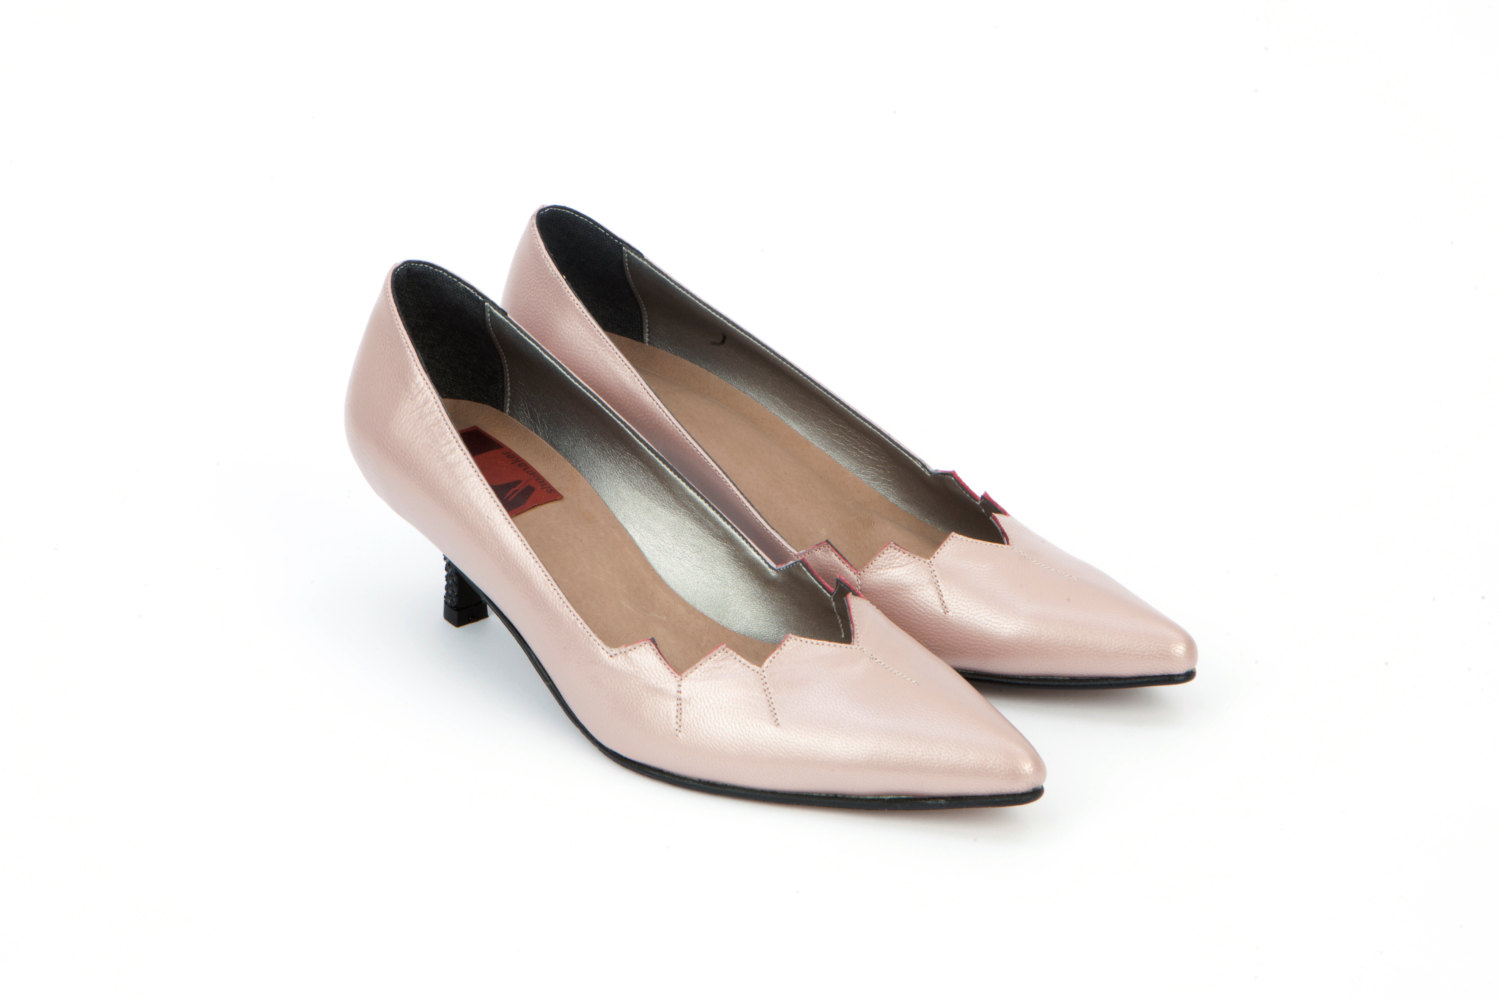 Pointed Toe Kitten Heel Shoes WnCz1nVG